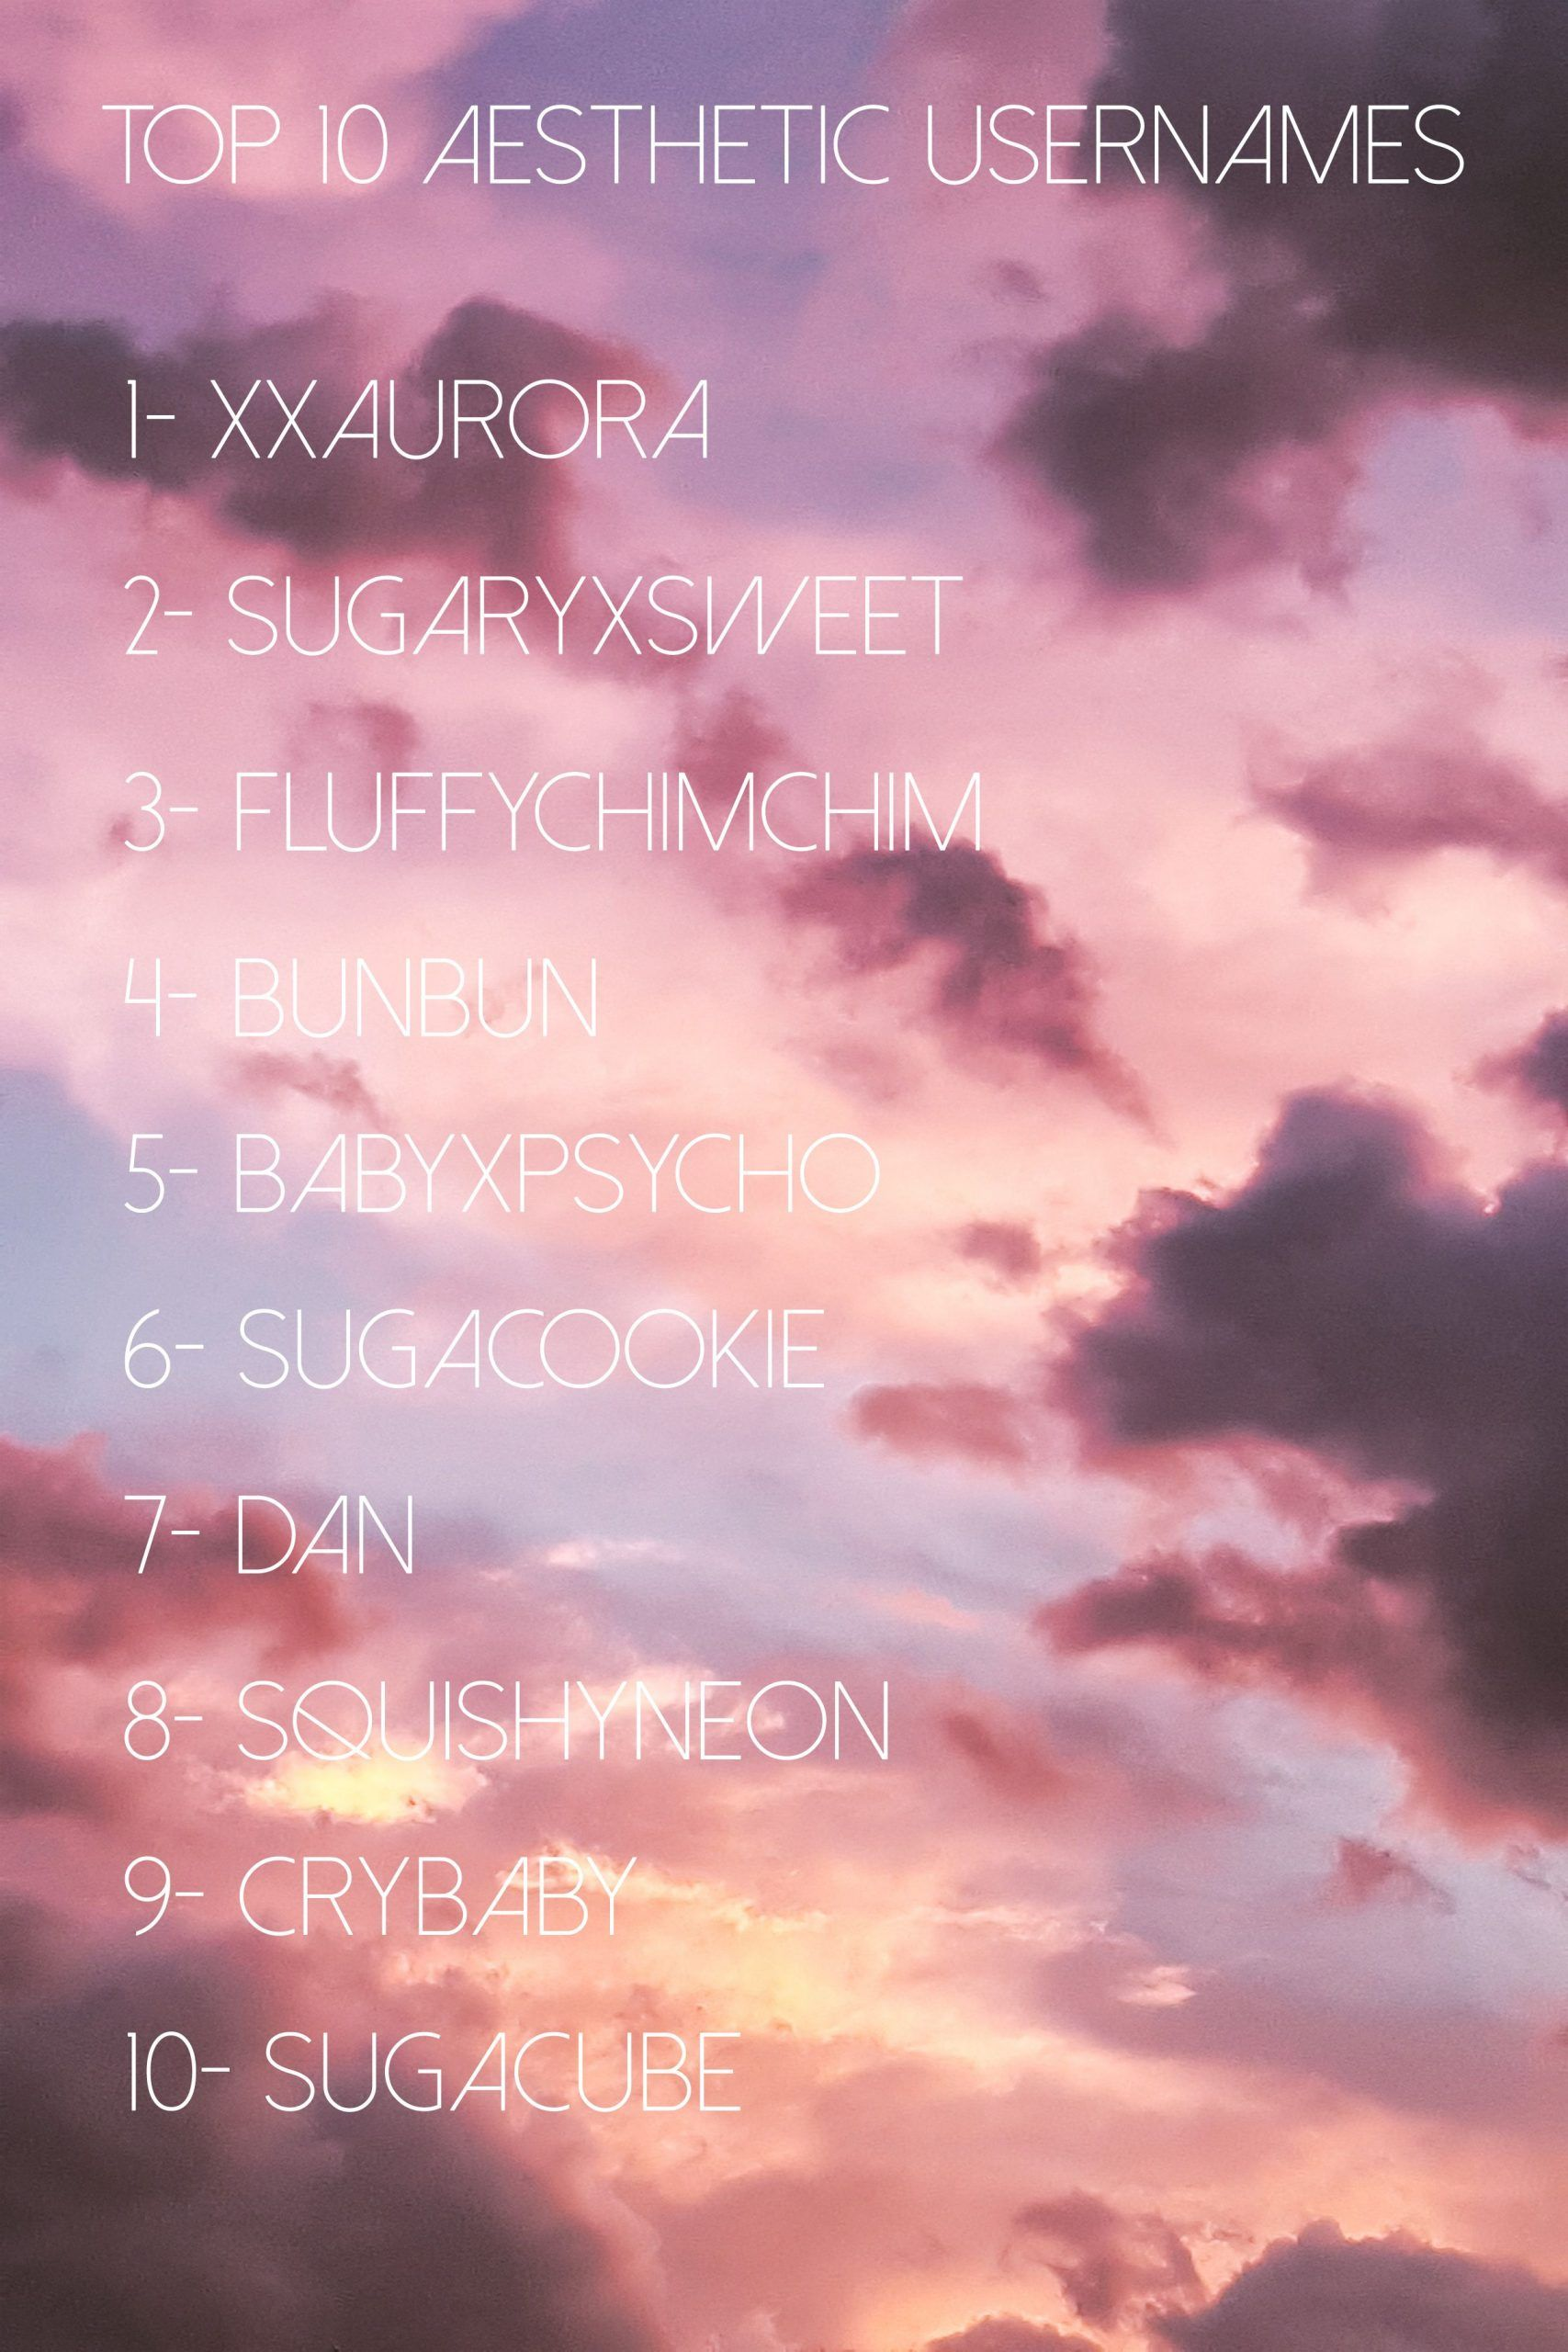 Aesthetic Names Which Are Trending Aesthetic Names Trending Aesthetic Usernames Cool Usernames For Instagram Usernames For Instagram